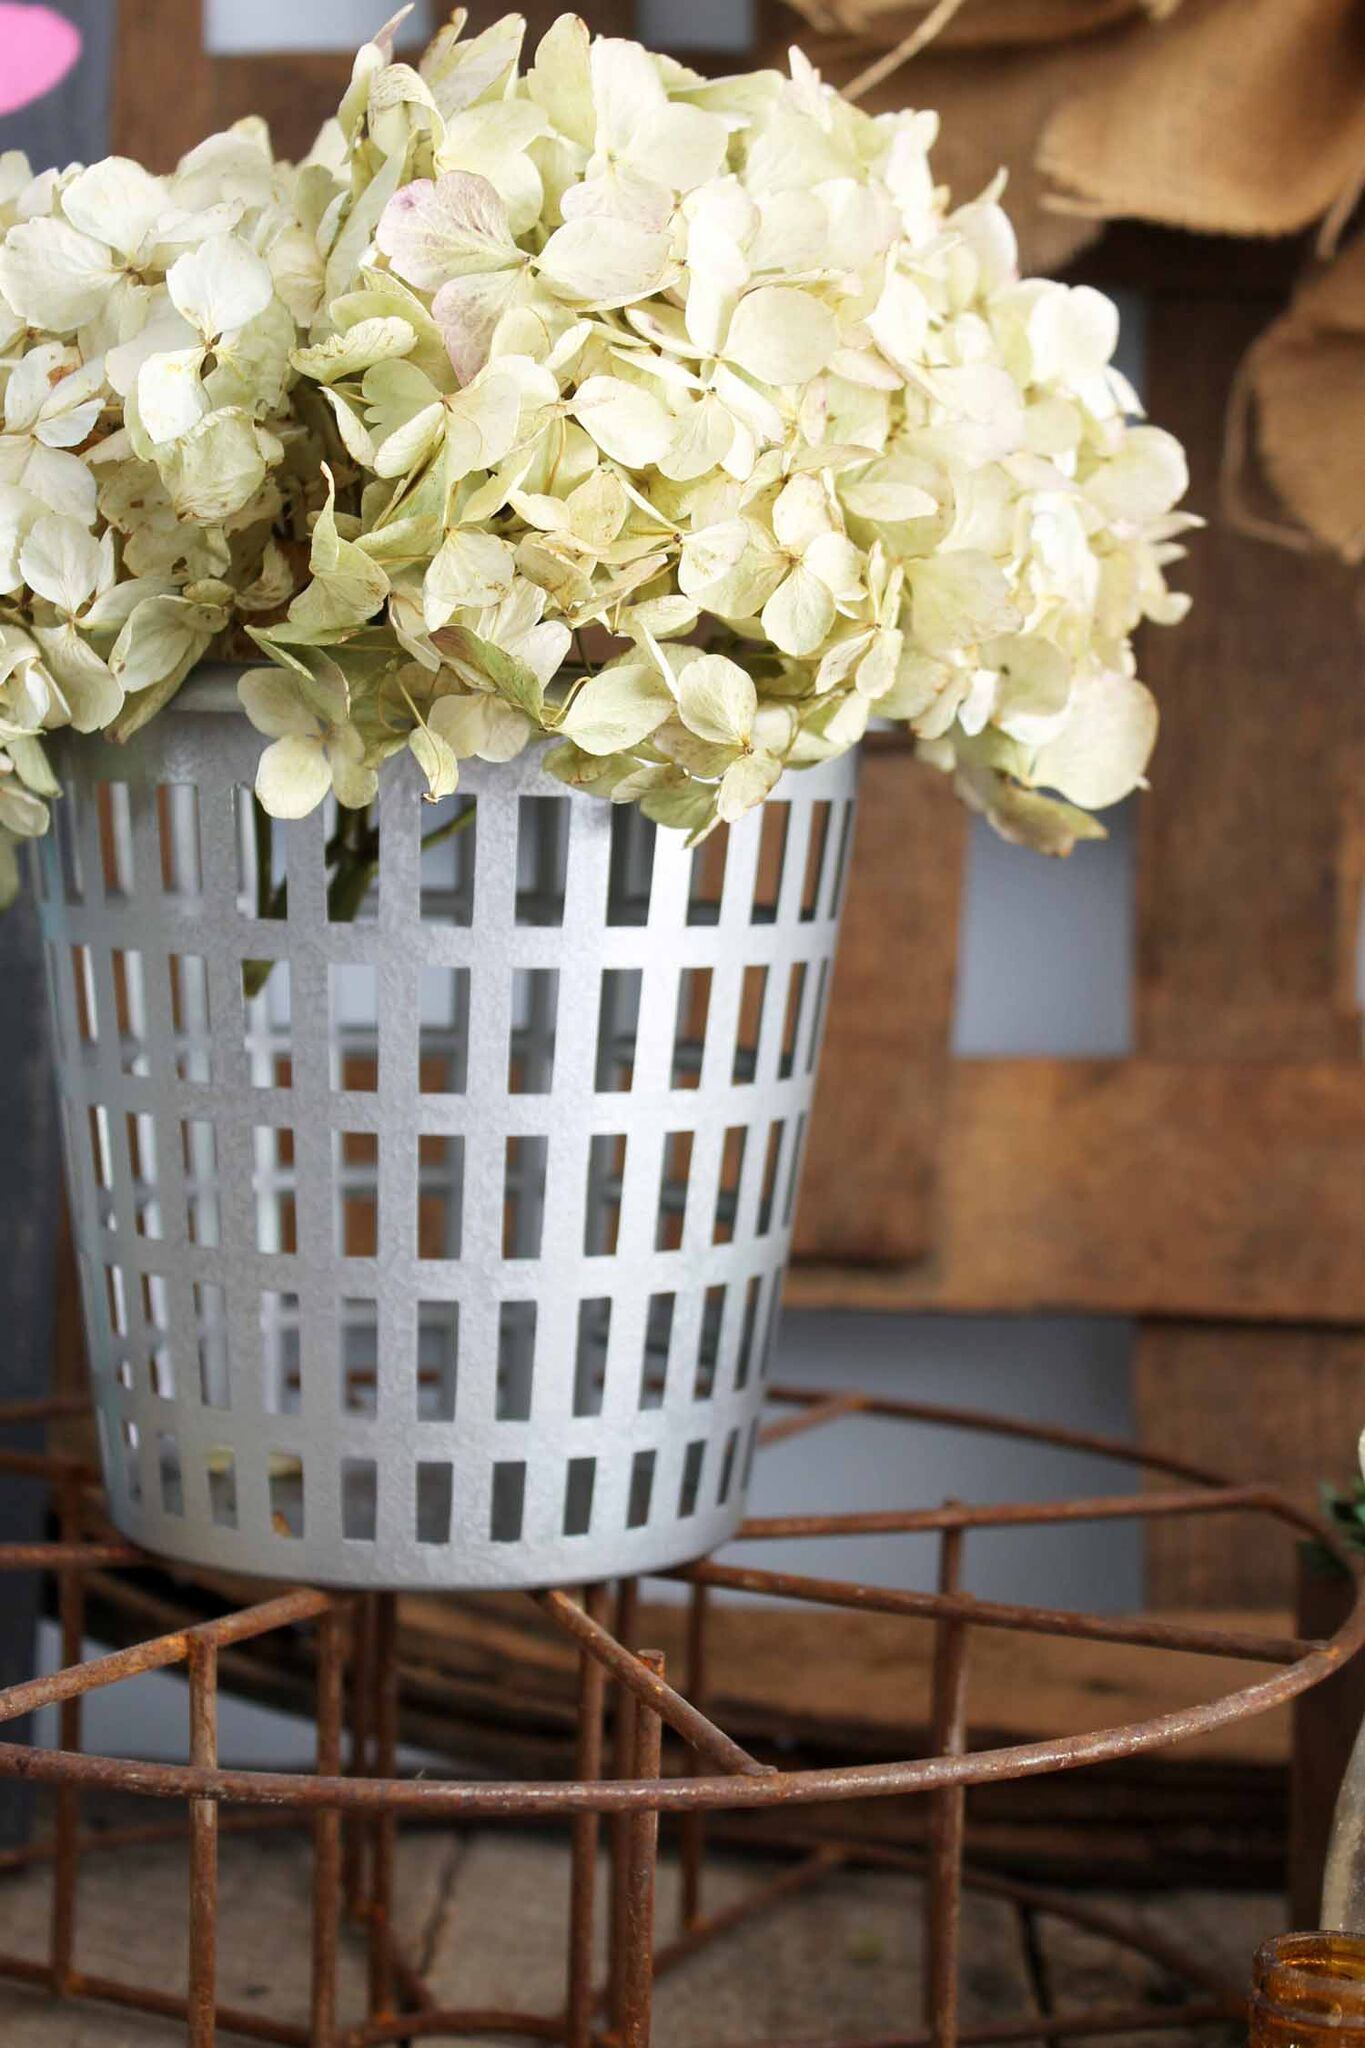 The perfect rustic touch for farmhouse decor the olive basket